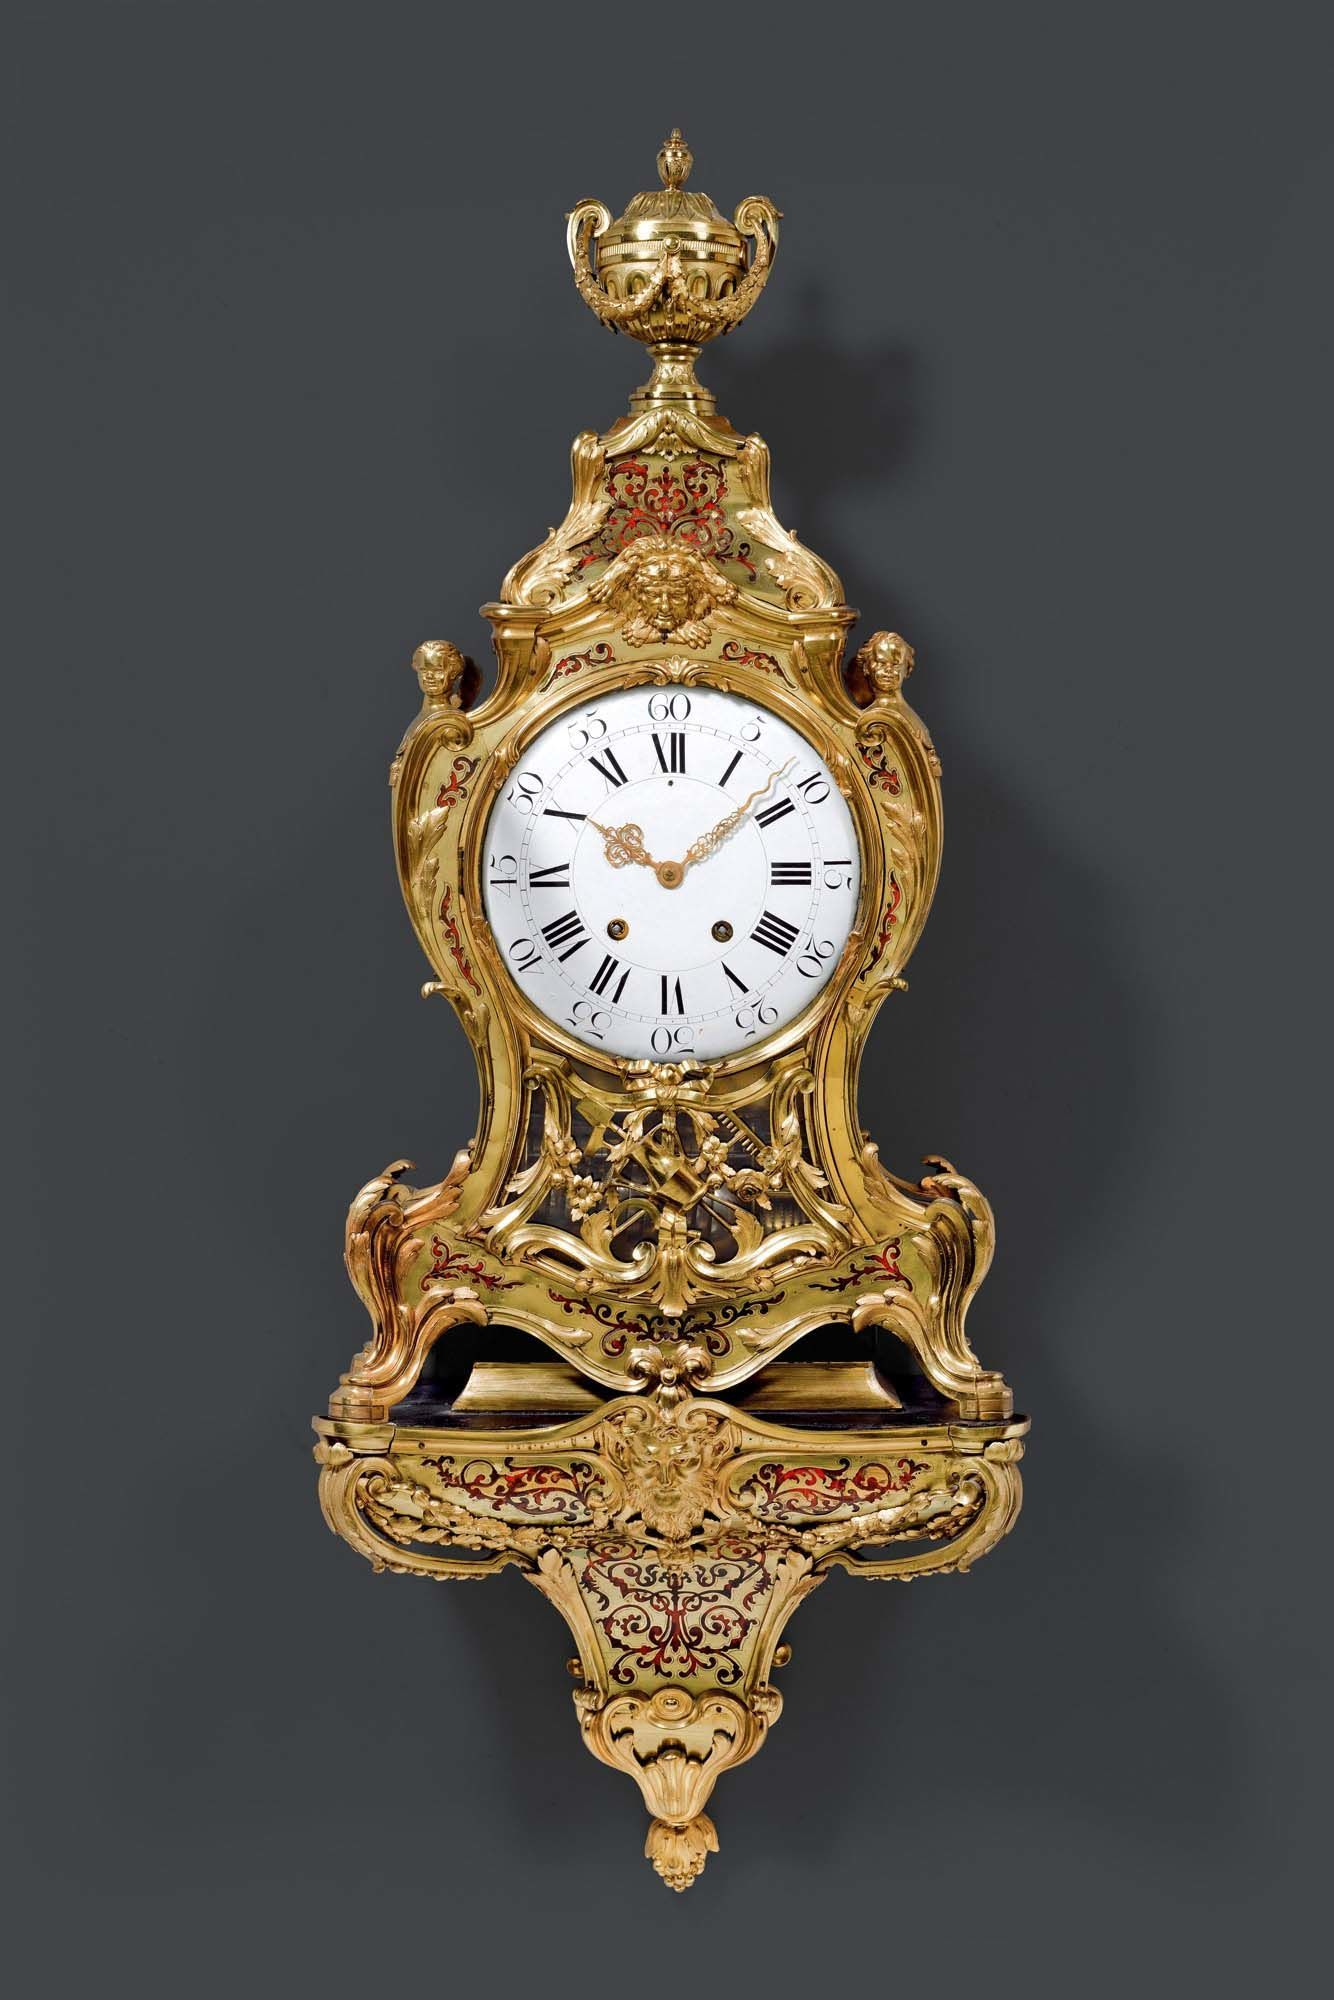 C1720 Boulle Clock With Carillon And Plinth Regence The Movement